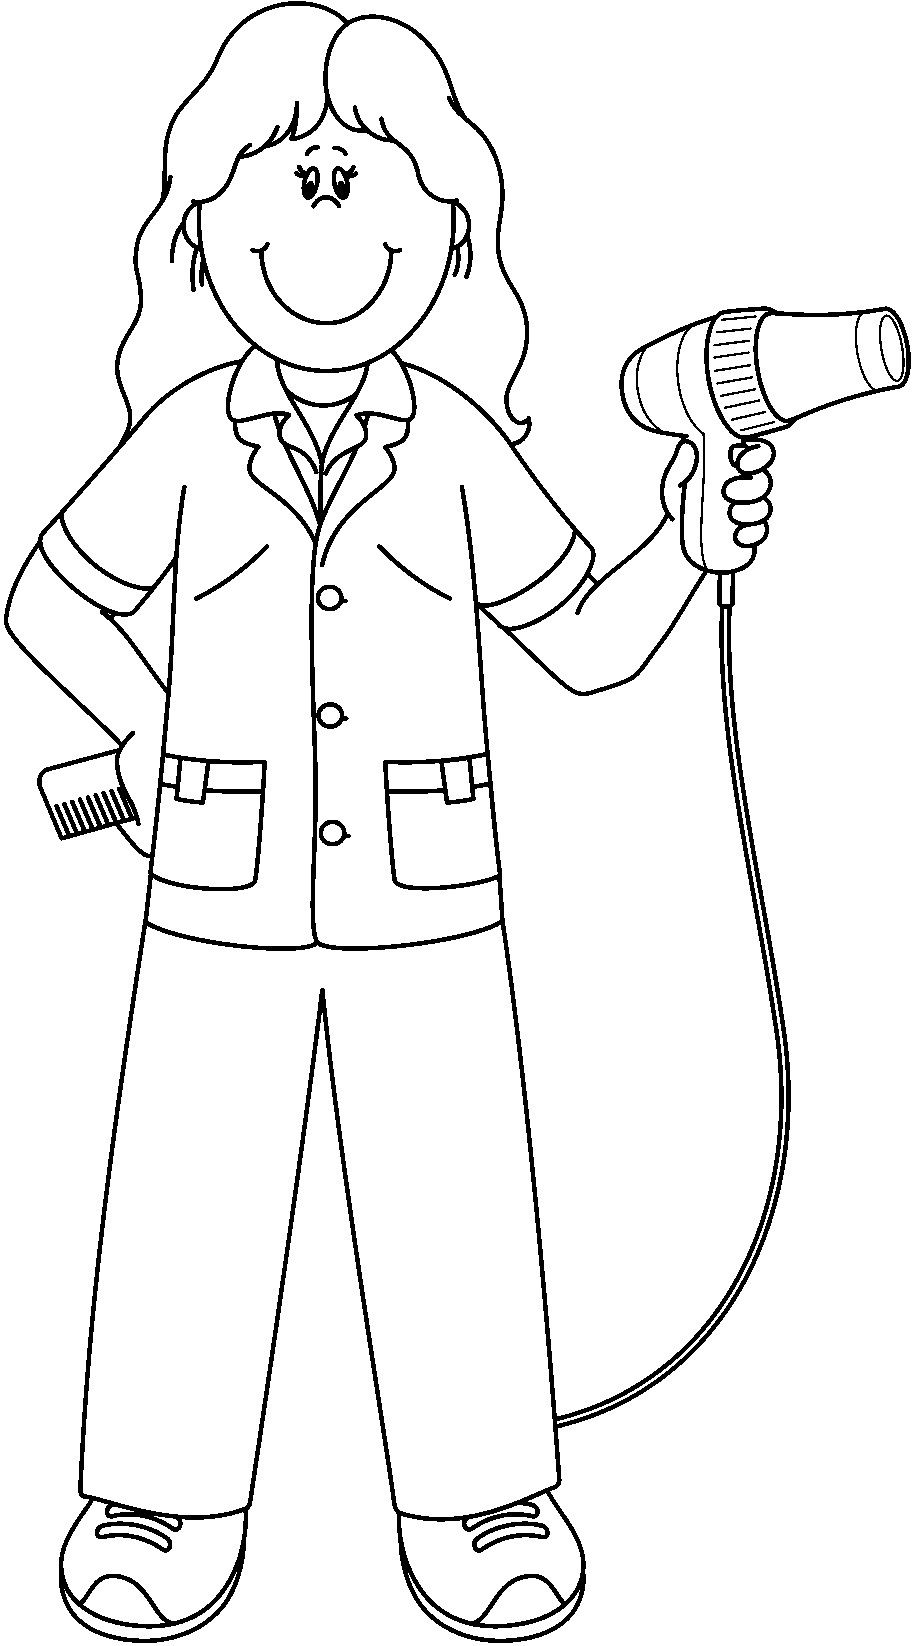 community helper coloring pages community helpers and people coloring pages momjunction pages coloring helper community